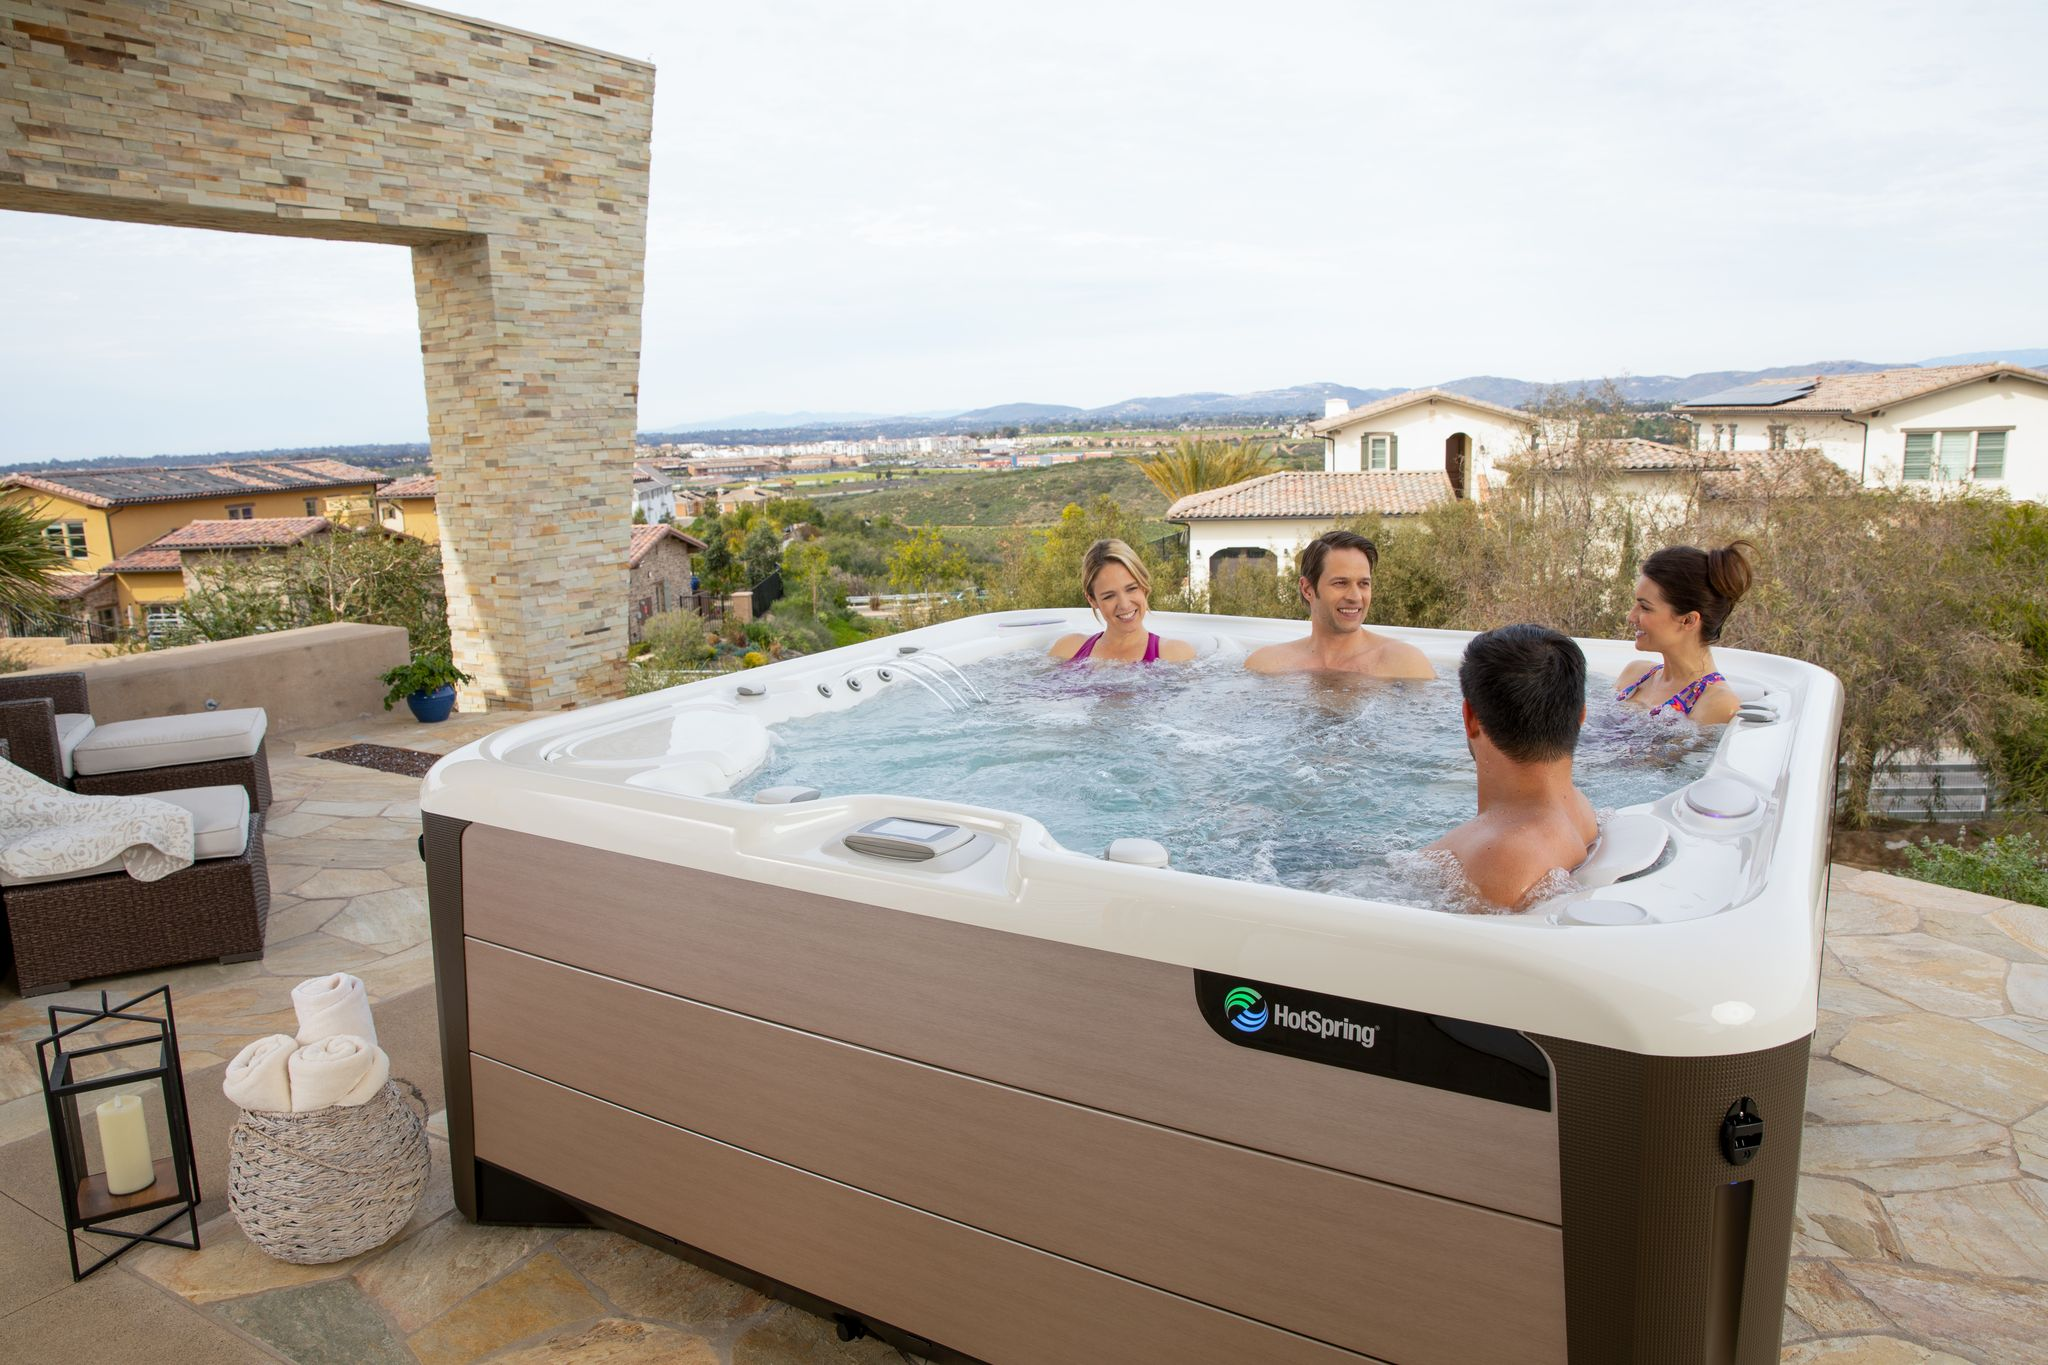 The Ultimate Guide to Finding Your Perfect Hot Tub